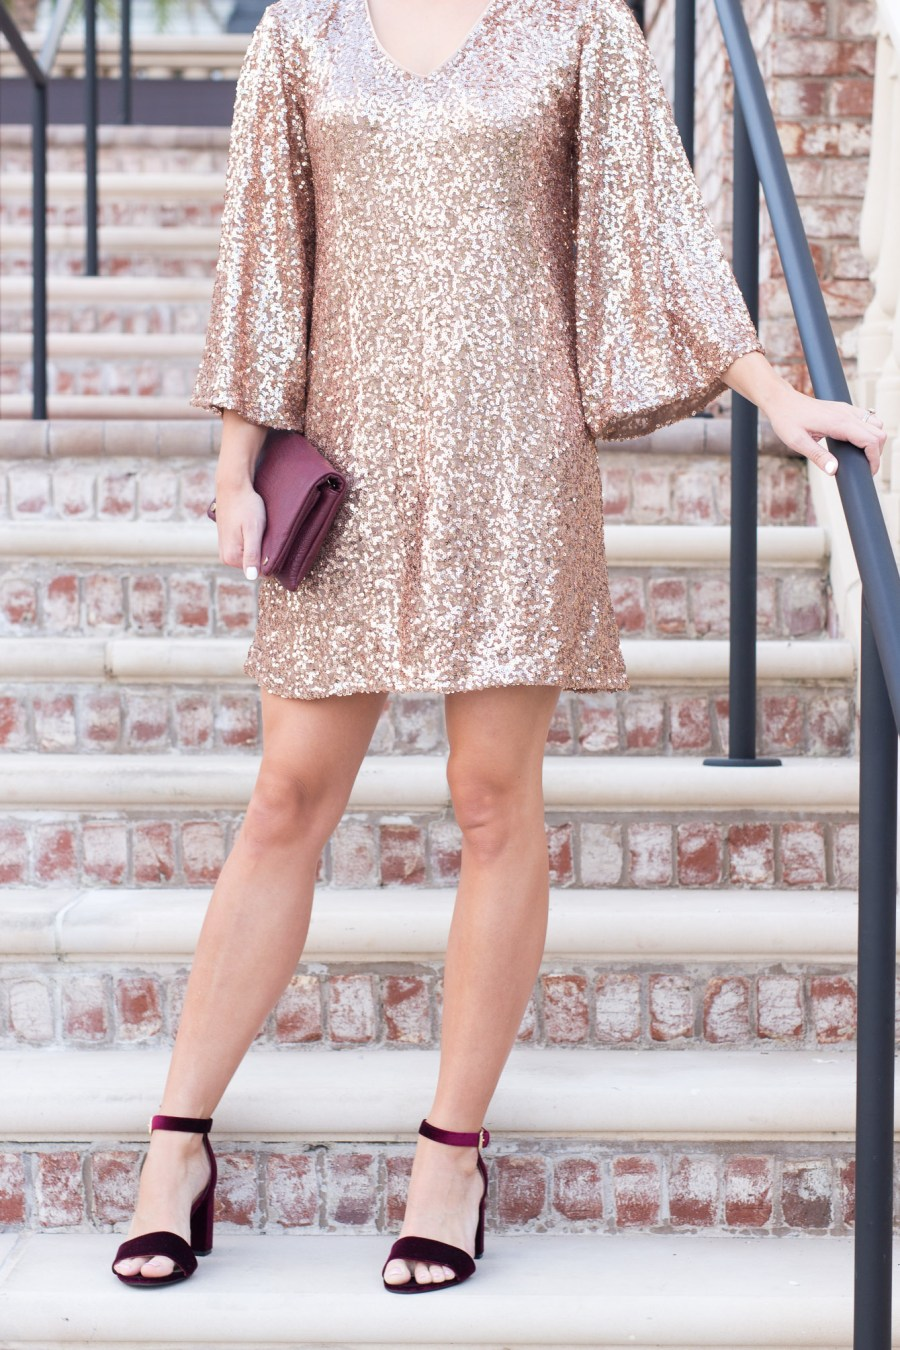 sequin dress from Maggy London for holiday parties